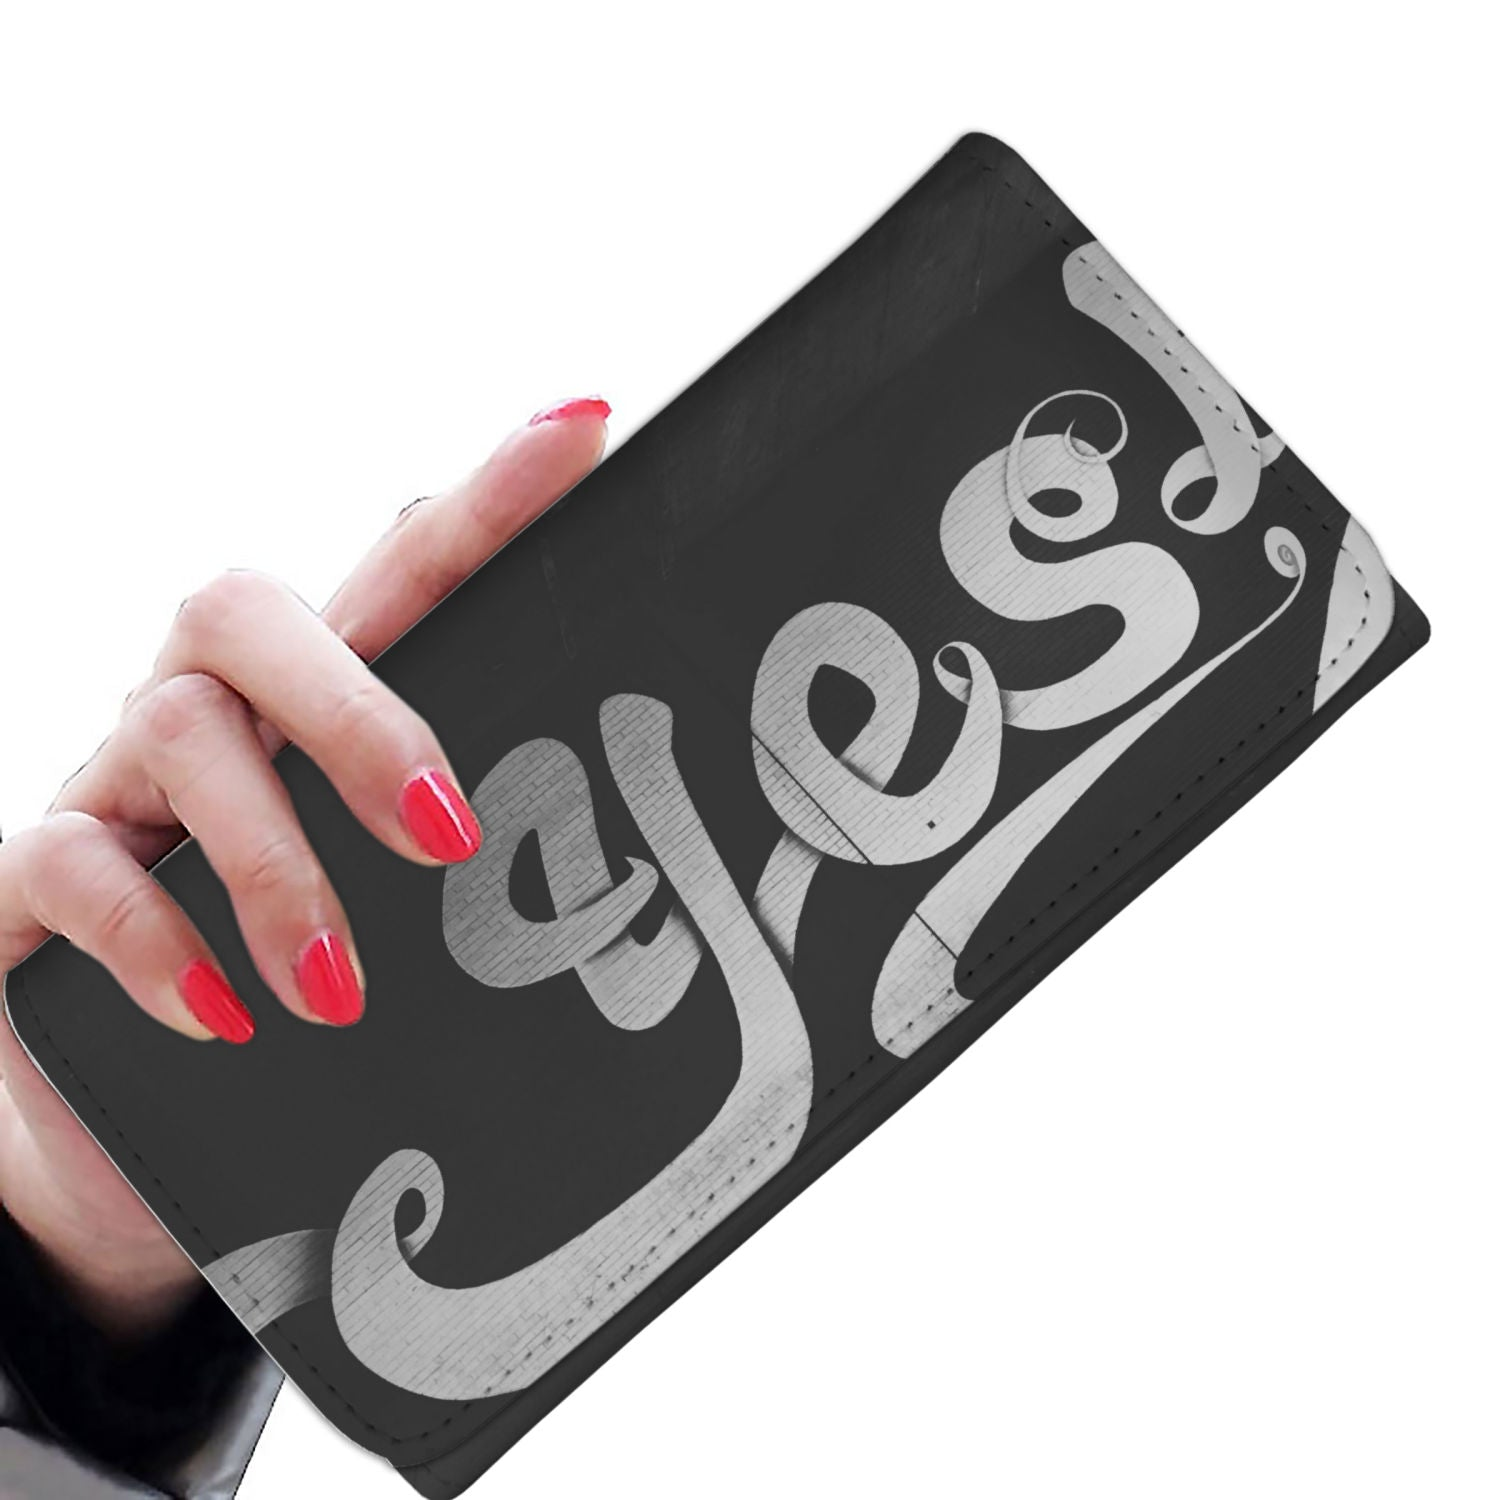 Yes, Awesome women's wallet